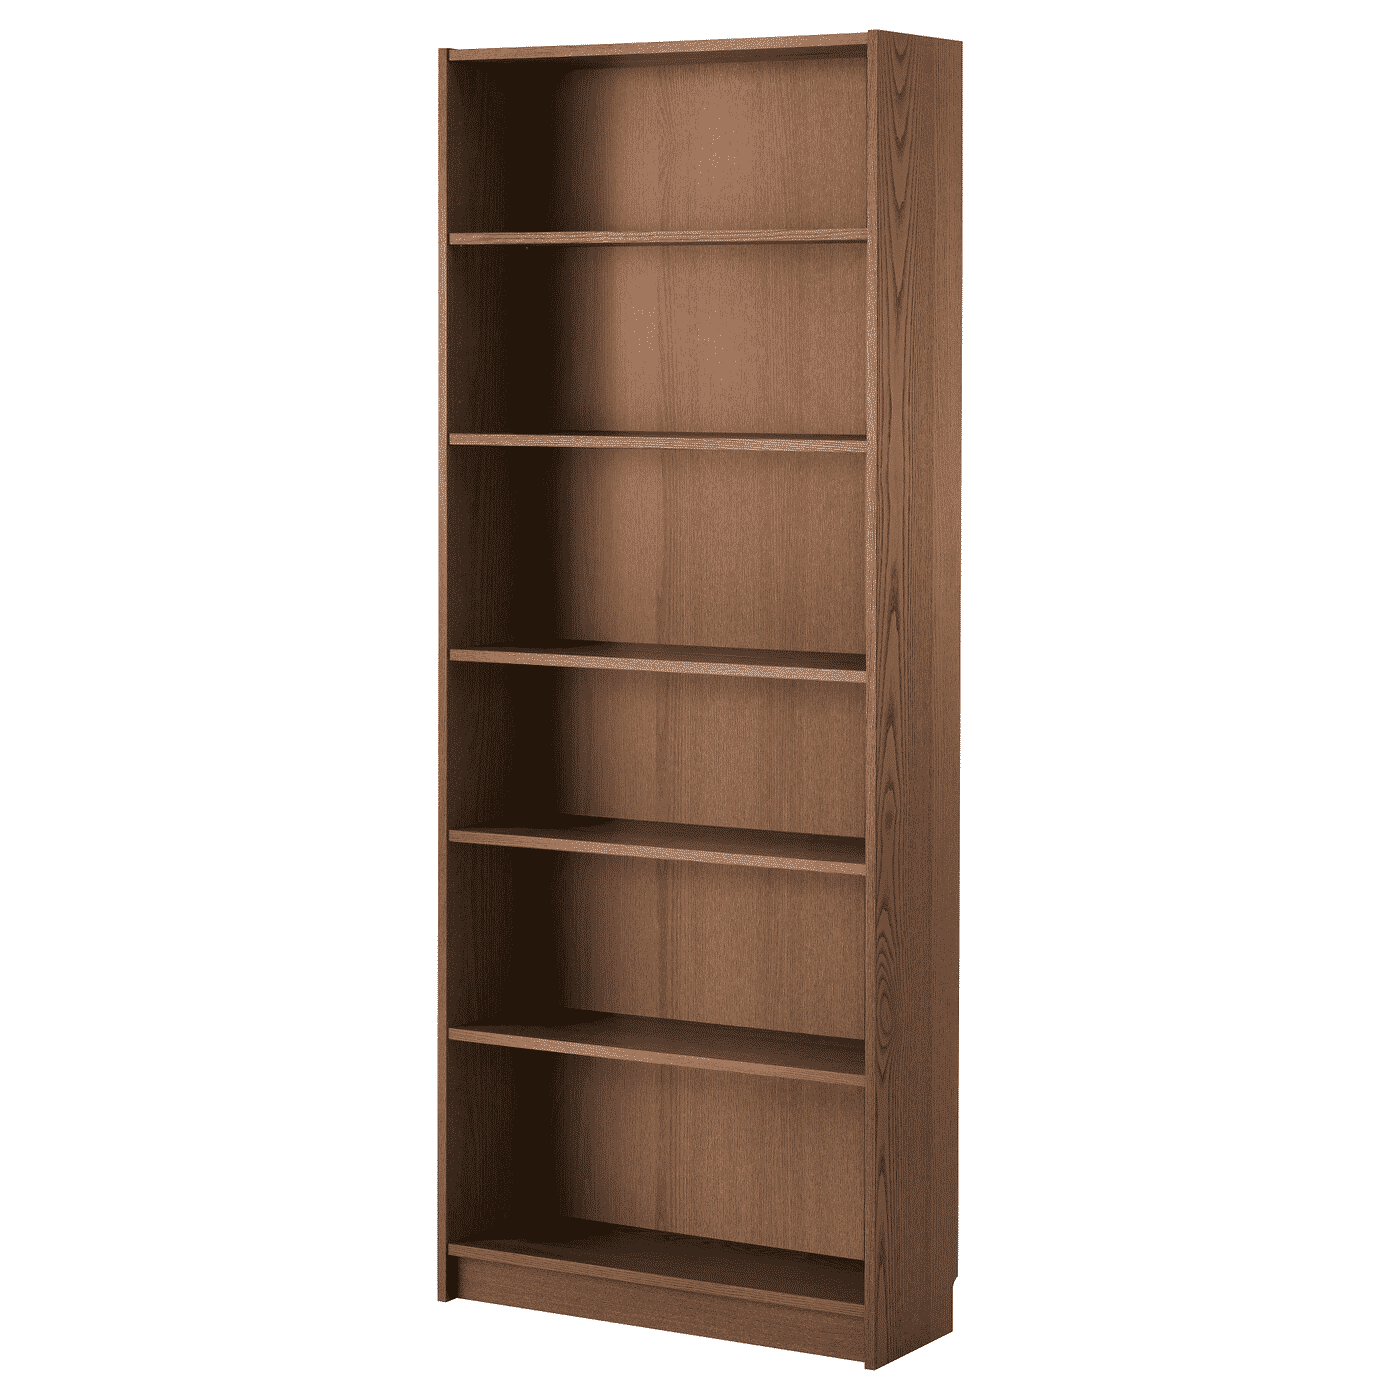 The BILLY Bookcase